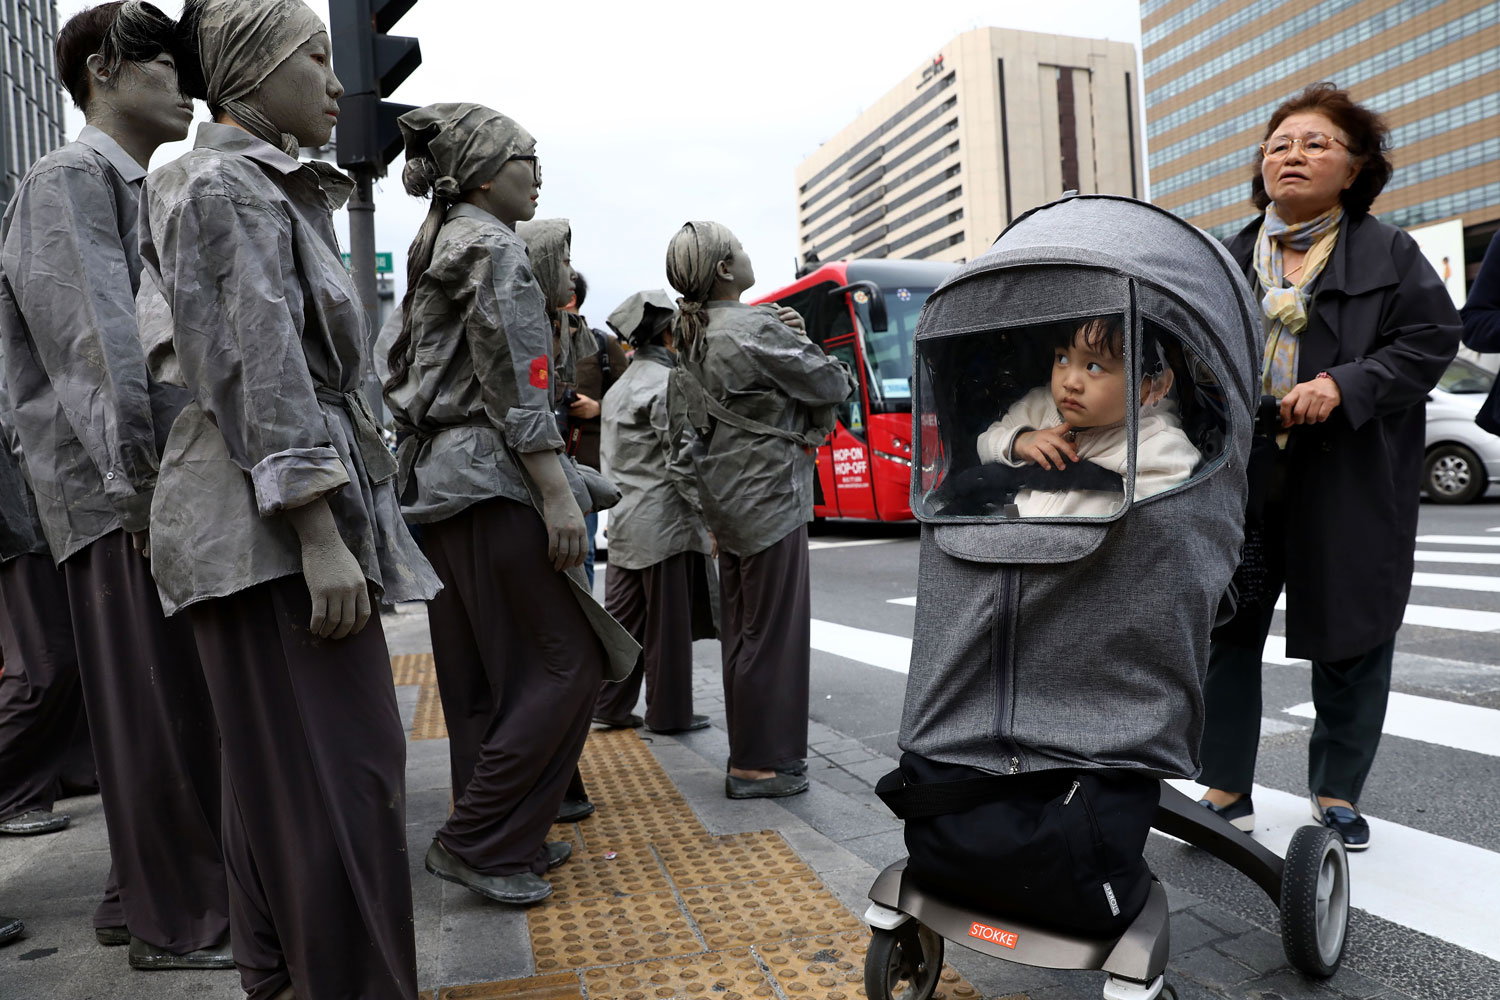 A boy peers at South Korean performers during the 70th anniversary commemoration of the Jeju Uprising on April 3 in Seoul. About 300 people took part in the performance to pay respect to victims of the clash between South Korean government under the control of United Nation Temporary Commission on Korea and the guerrilla fighters of the South Korean Labor Party, which was ruling the island in 1948. Tens of thousands of people are said to have been killed. (Chung Sung-Jun/Getty Images)